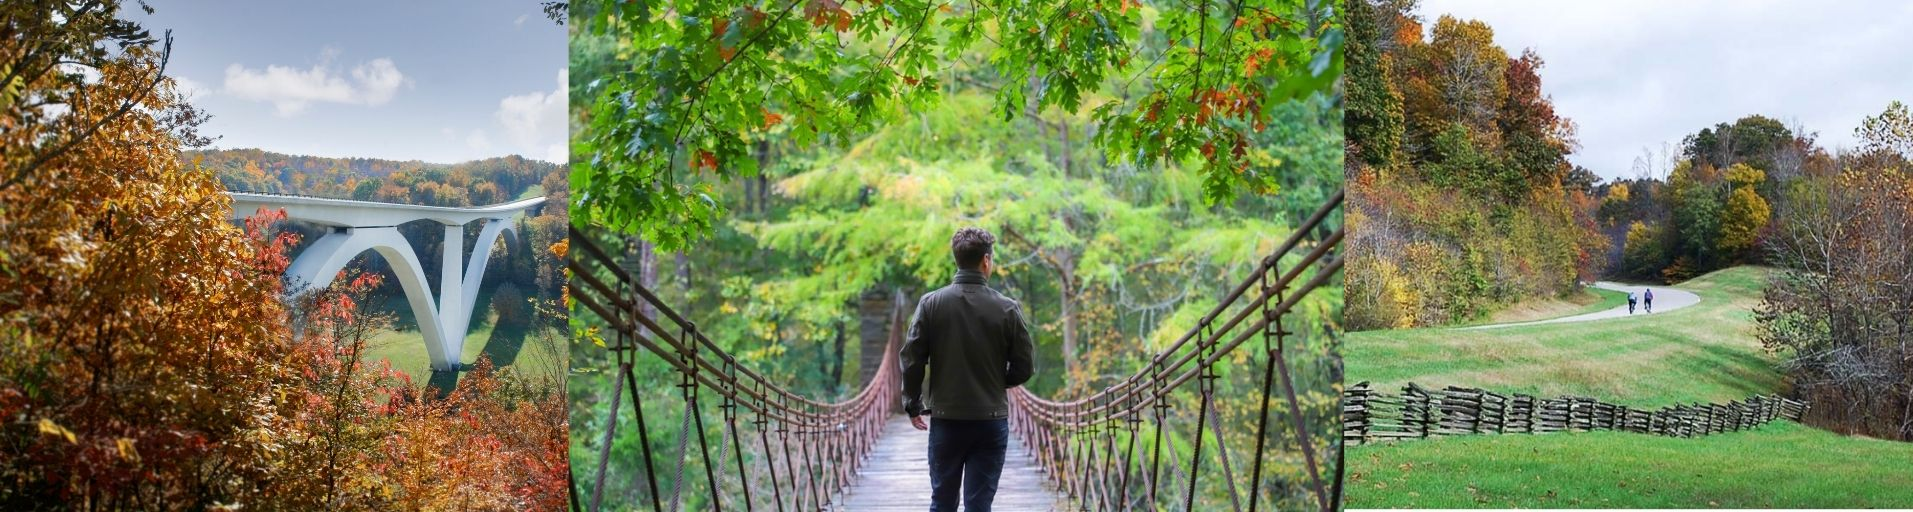 Interesting Things to Do in Natchez Trace